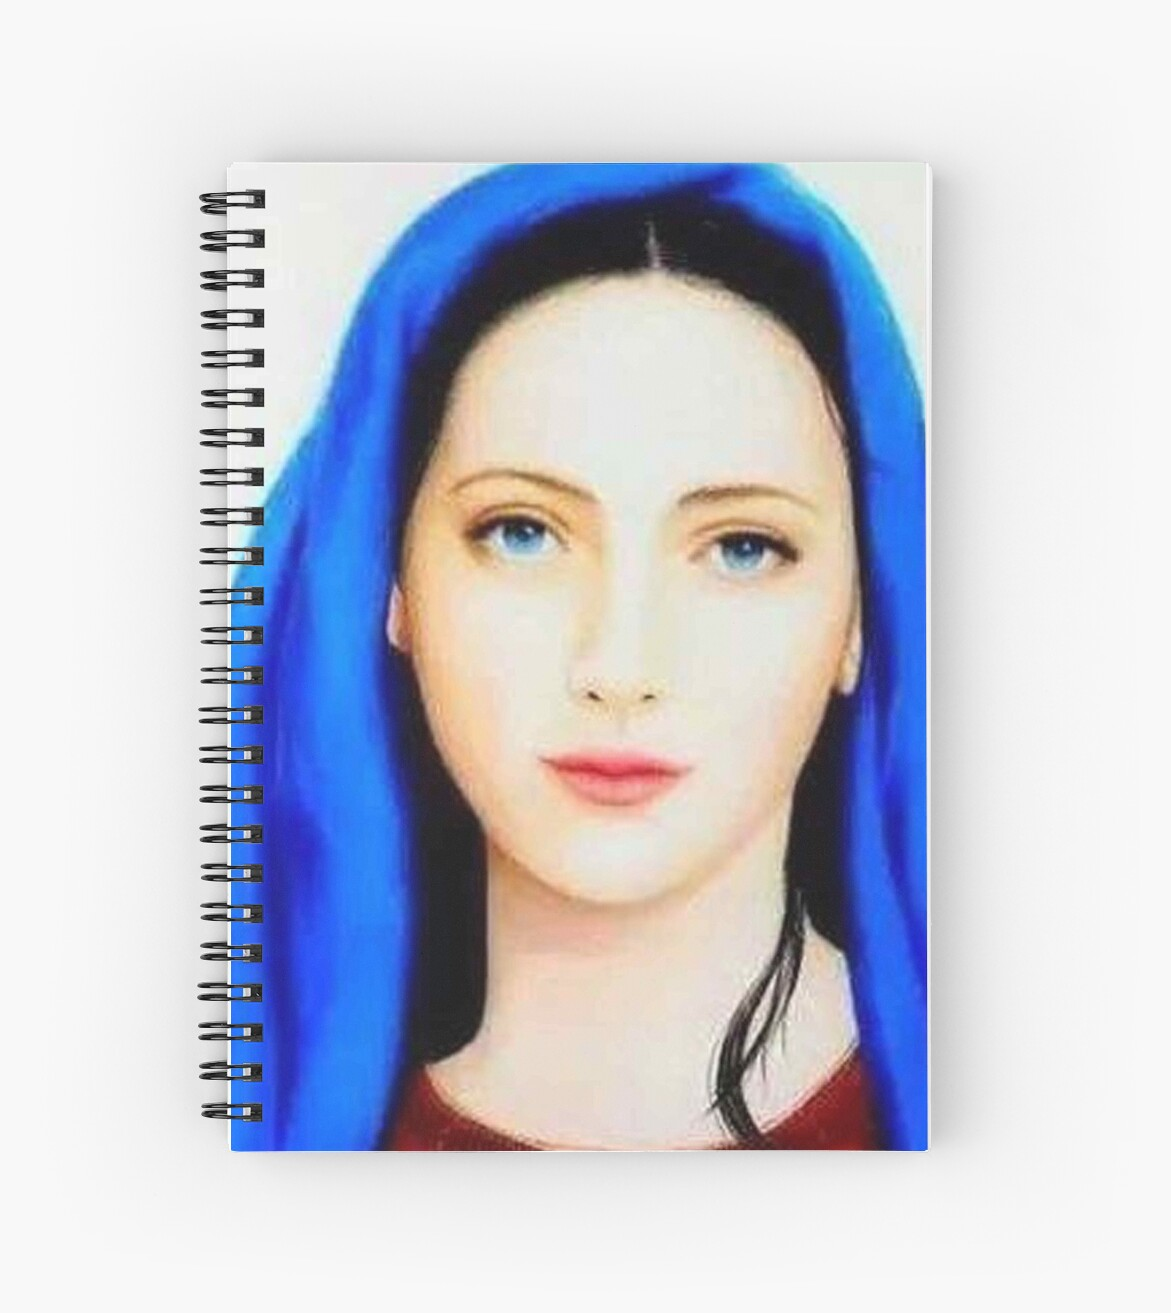 Mother marymother of jesus christmother of godst marybeautiful mother maryfaithcatholicchristian spiral notebook